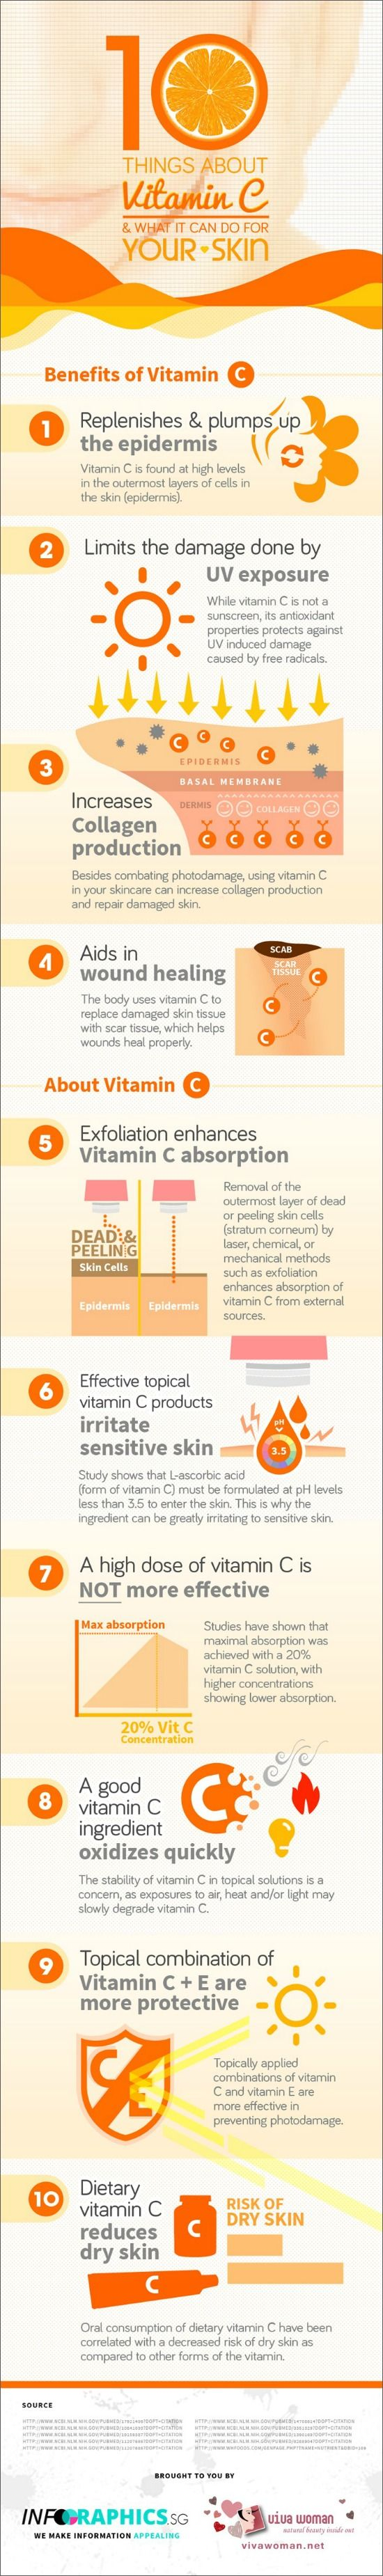 Vitamin C For Skincare Infographics 10 Things About Vitamin C For Your Skin Skin Benefits Natural Skin Care Skin Health